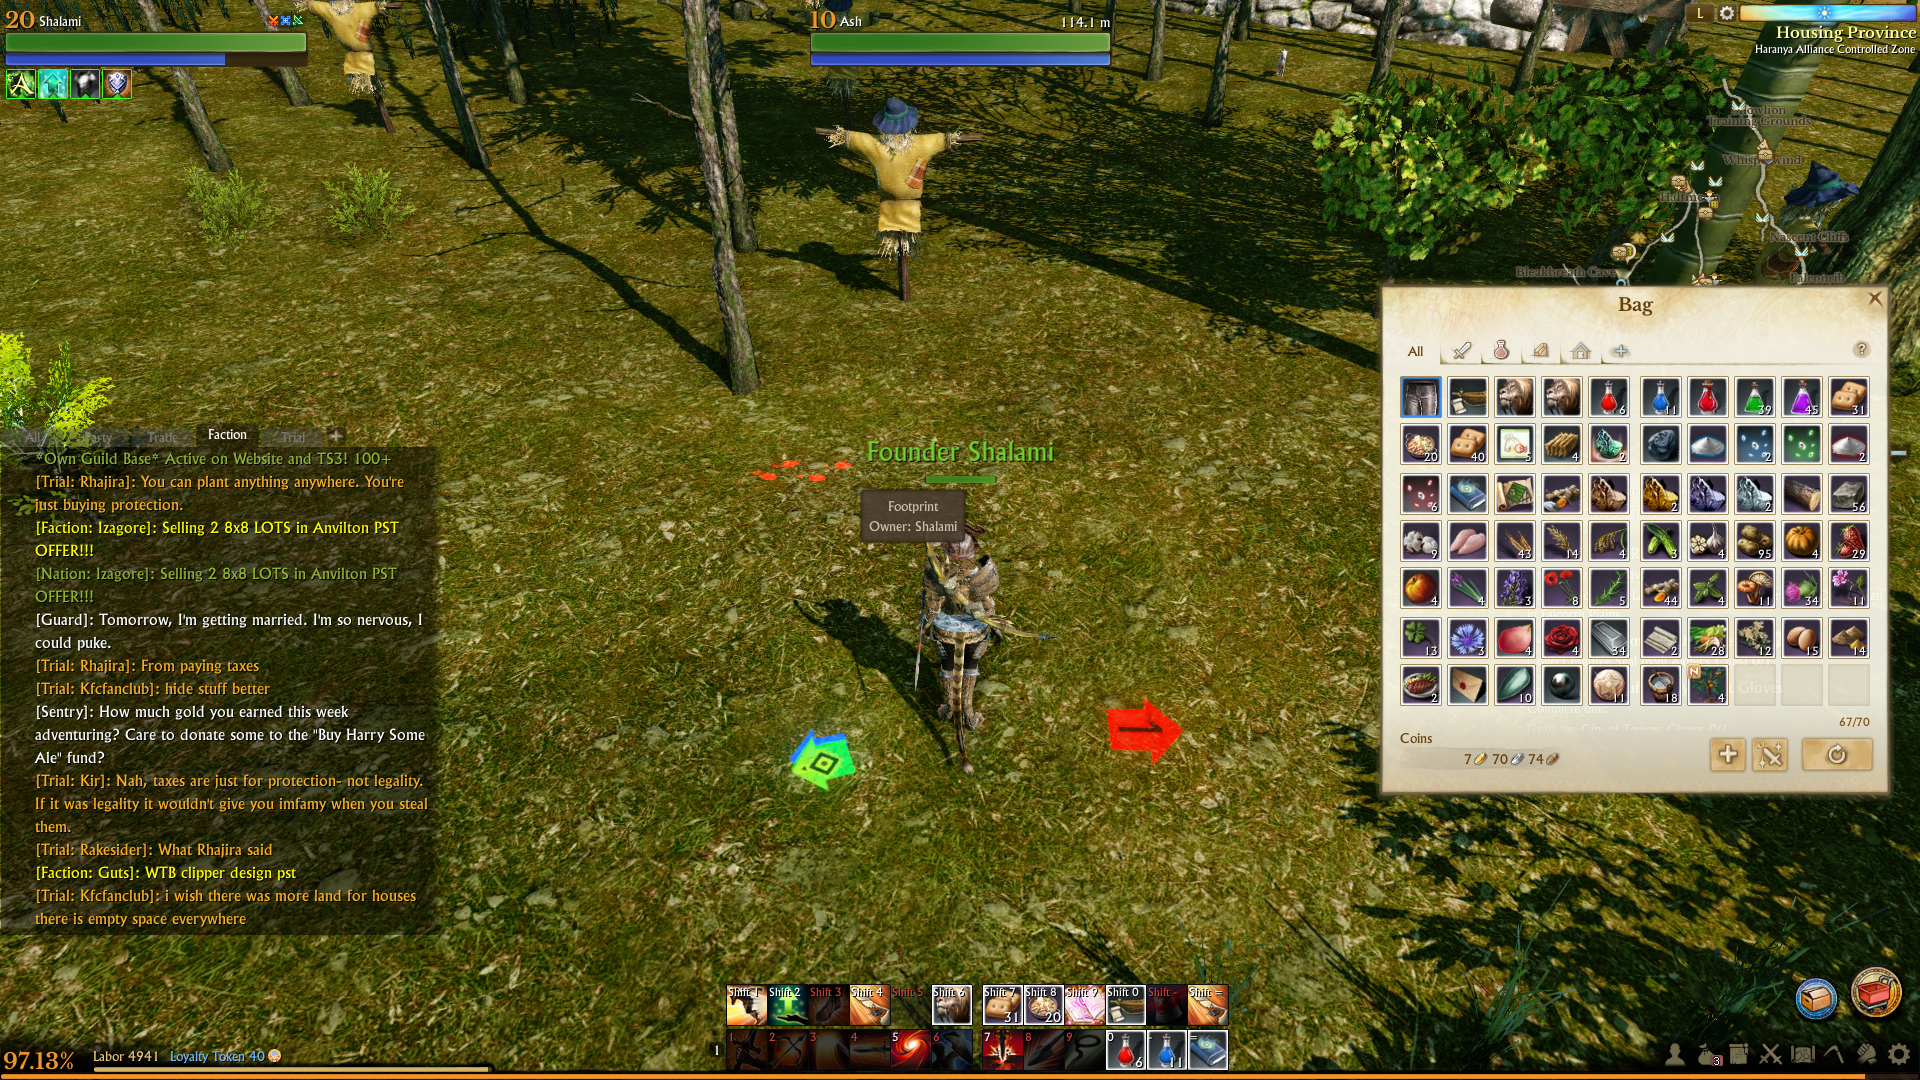 ArcheAge(JP) Launching on 23rd July with P2P Model - 2P.com - ArcheAge ...